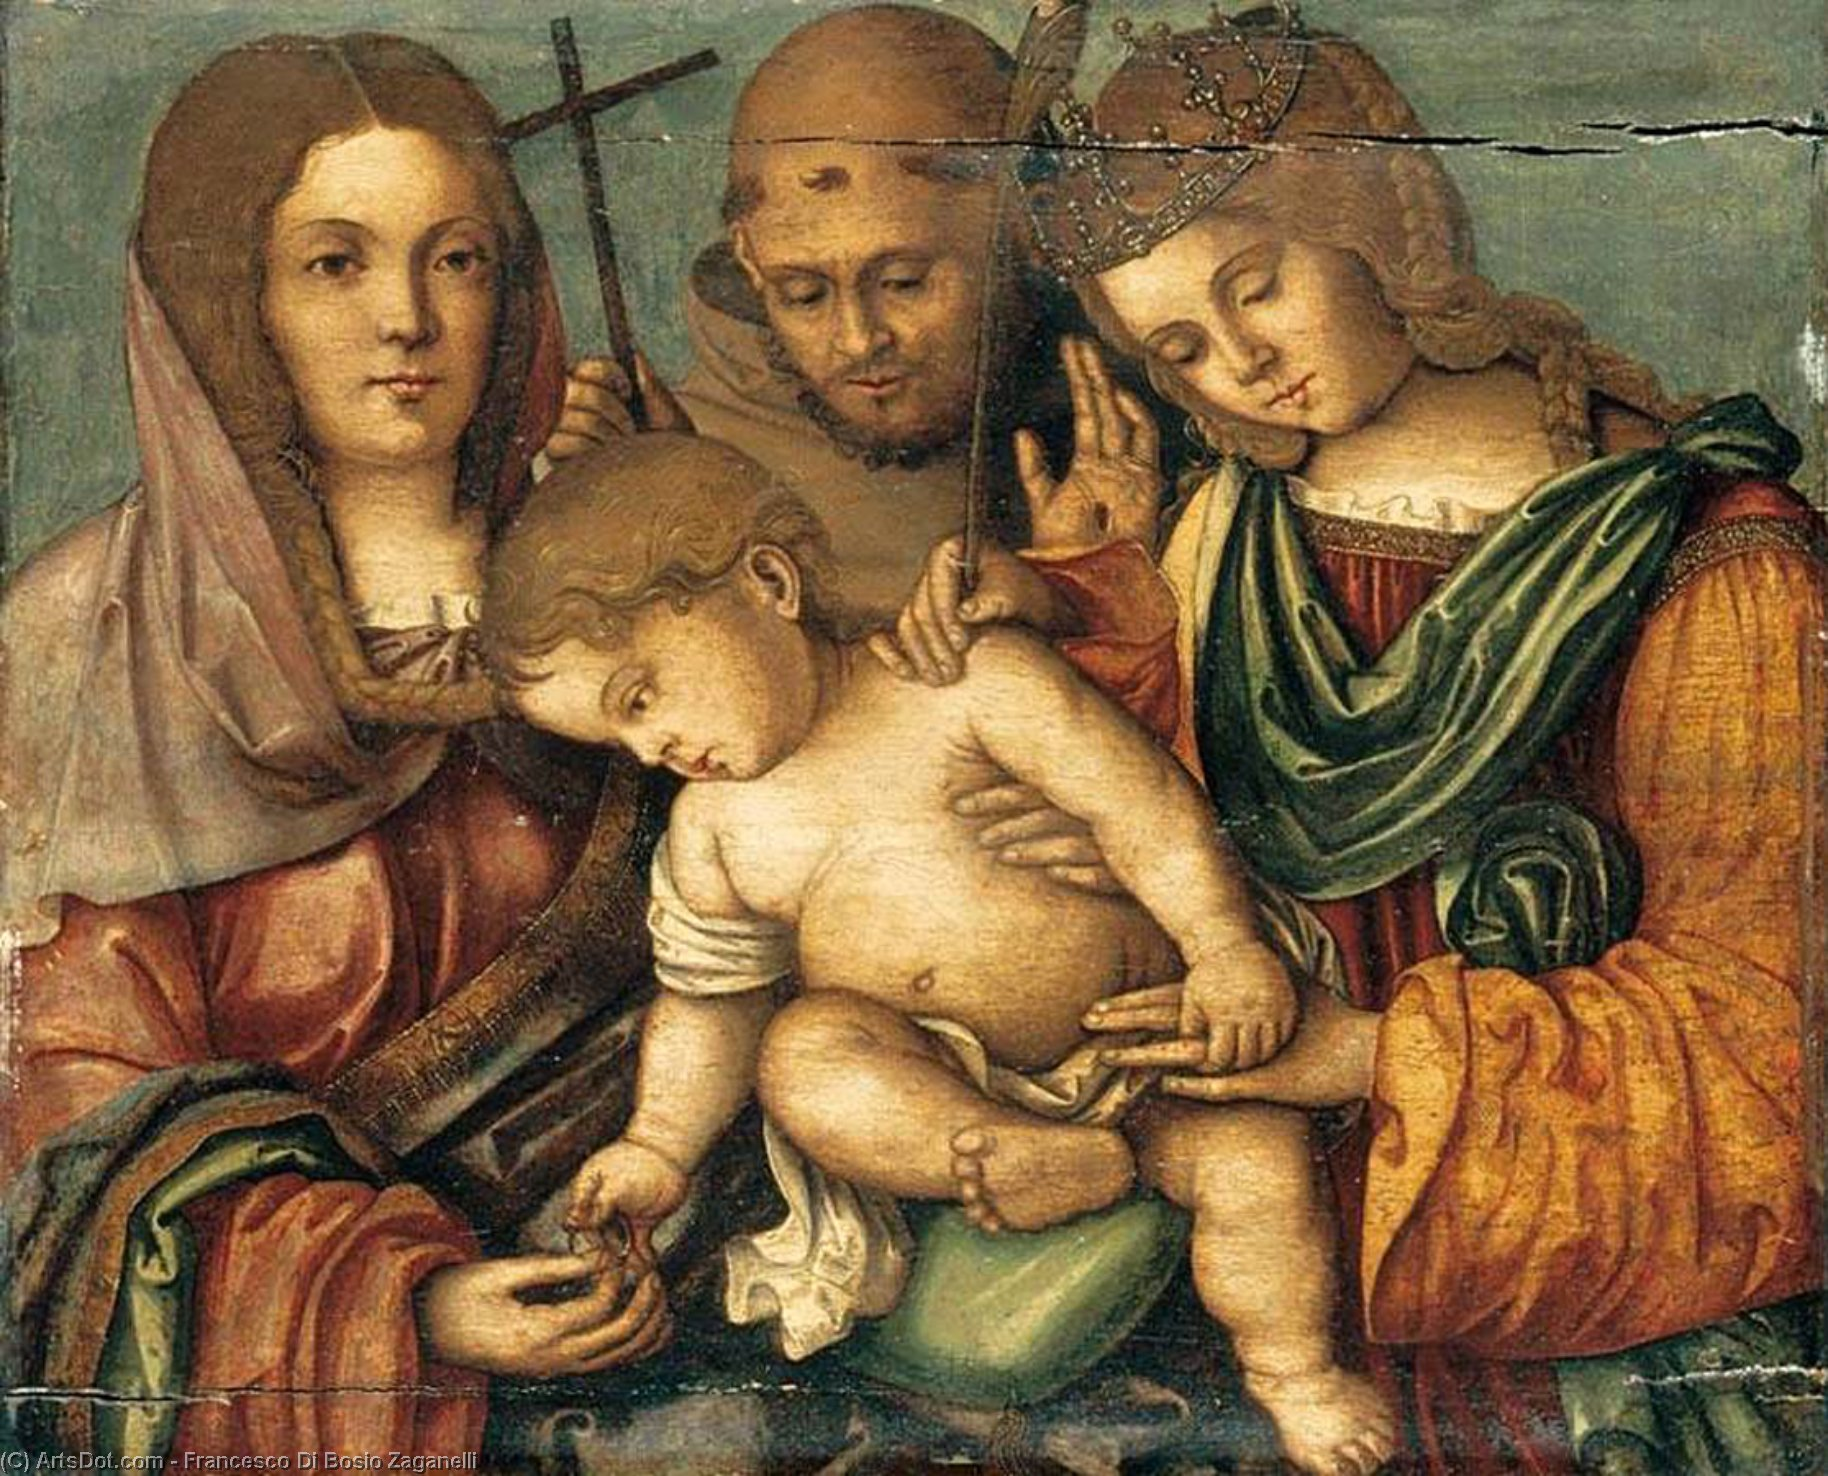 Wikioo.org - The Encyclopedia of Fine Arts - Painting, Artwork by Francesco Di Bosio Zaganelli - The Christ Child between Sts Catherine, Francis and Elizabeth of Hungary